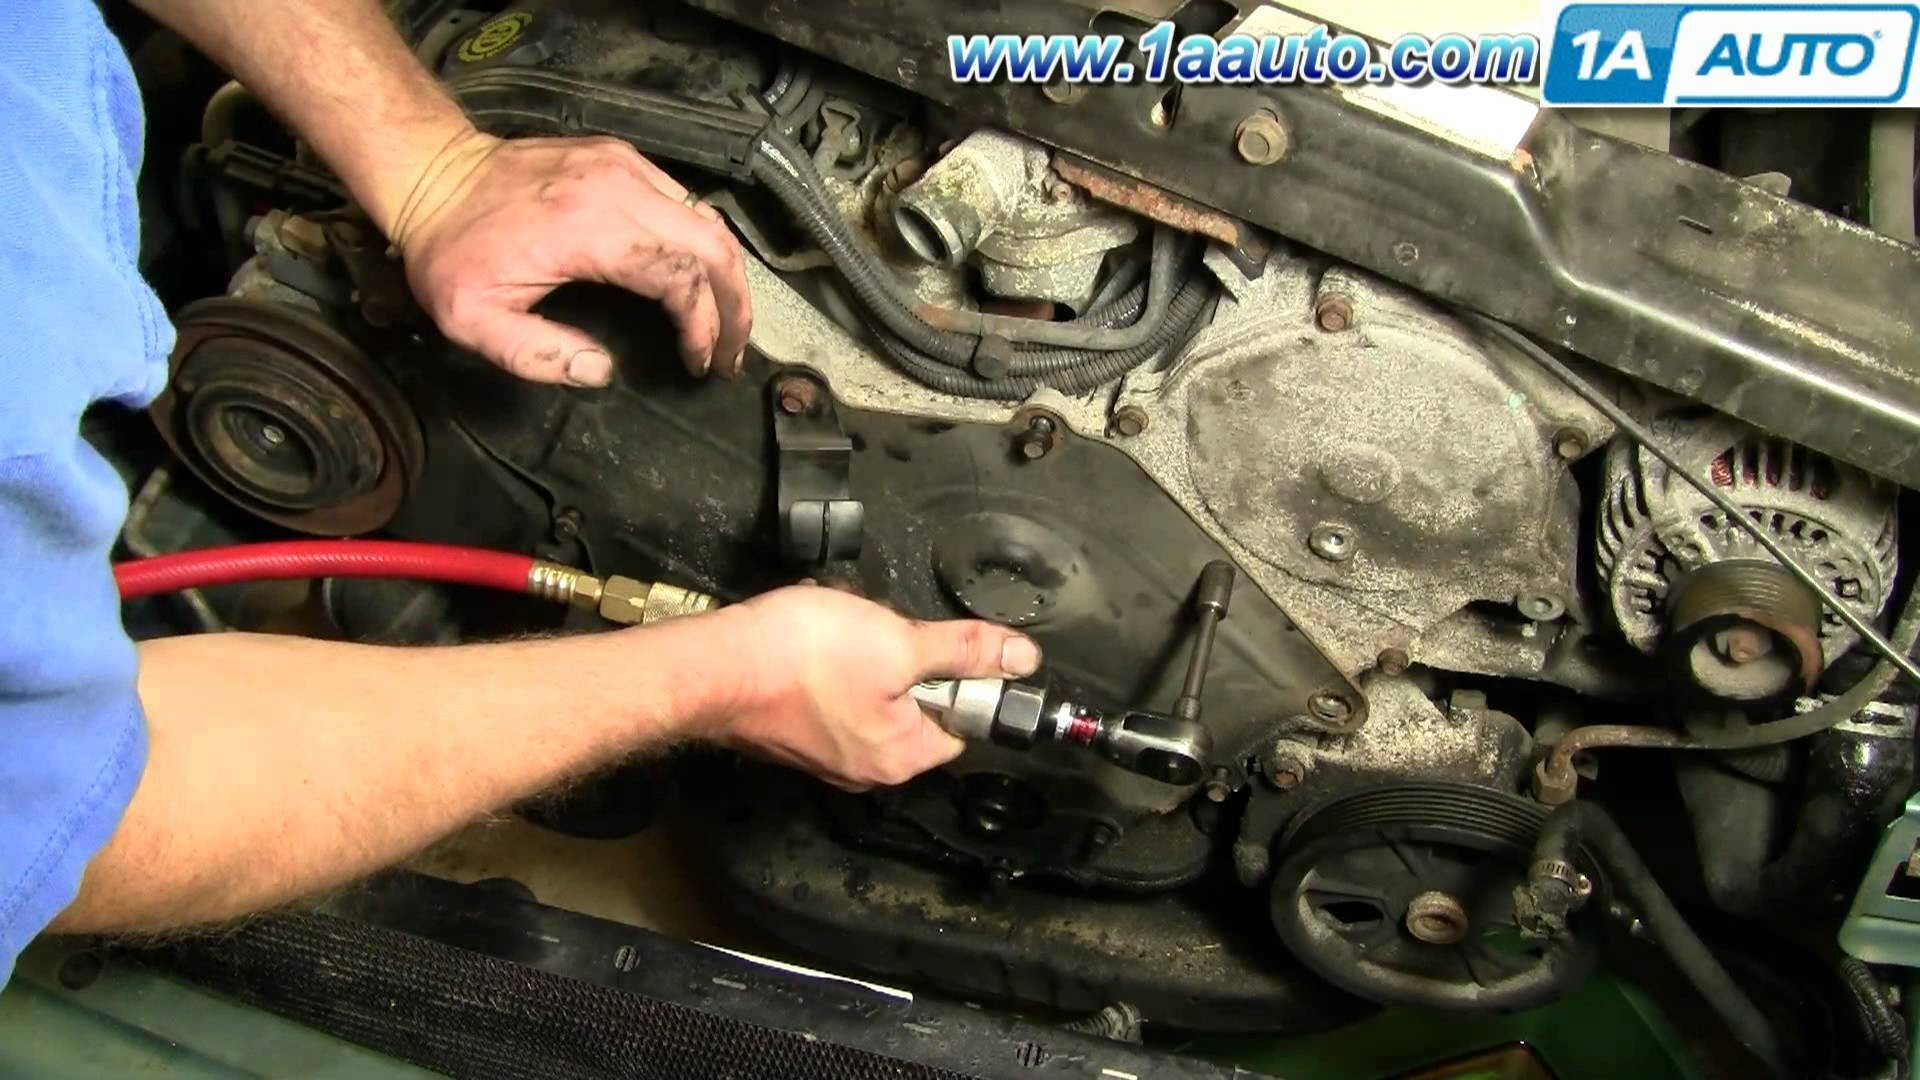 Diagram Of Car Water Pump How to Change Engine Timing Belt Dodge Intrepid 3 5l 95 97 Part 2 Of Diagram Of Car Water Pump How to Change Engine Timing Belt Dodge Intrepid 3 5l 95 97 Part 2